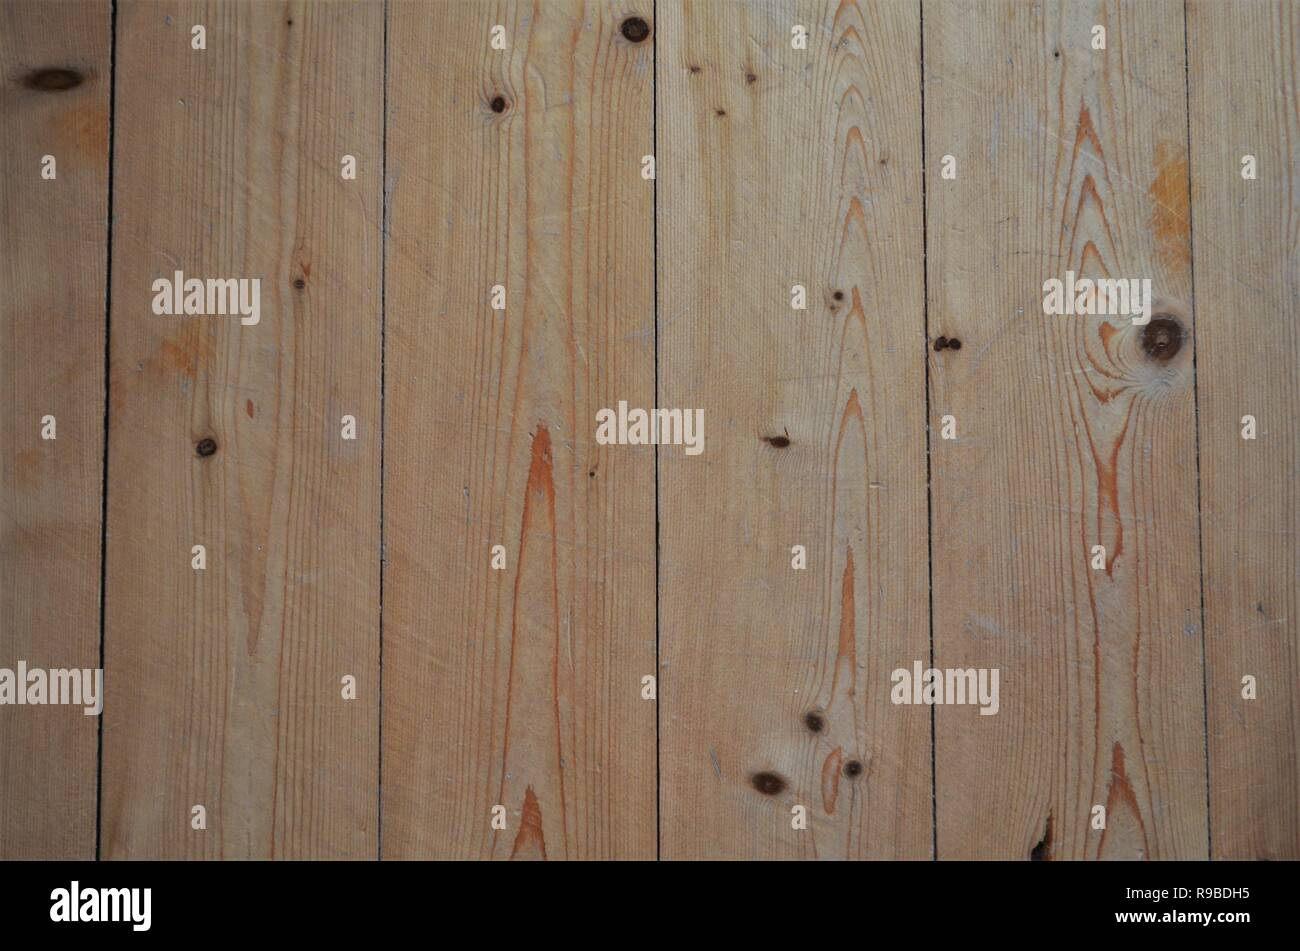 brown wooden planks panels structure - Stock Image